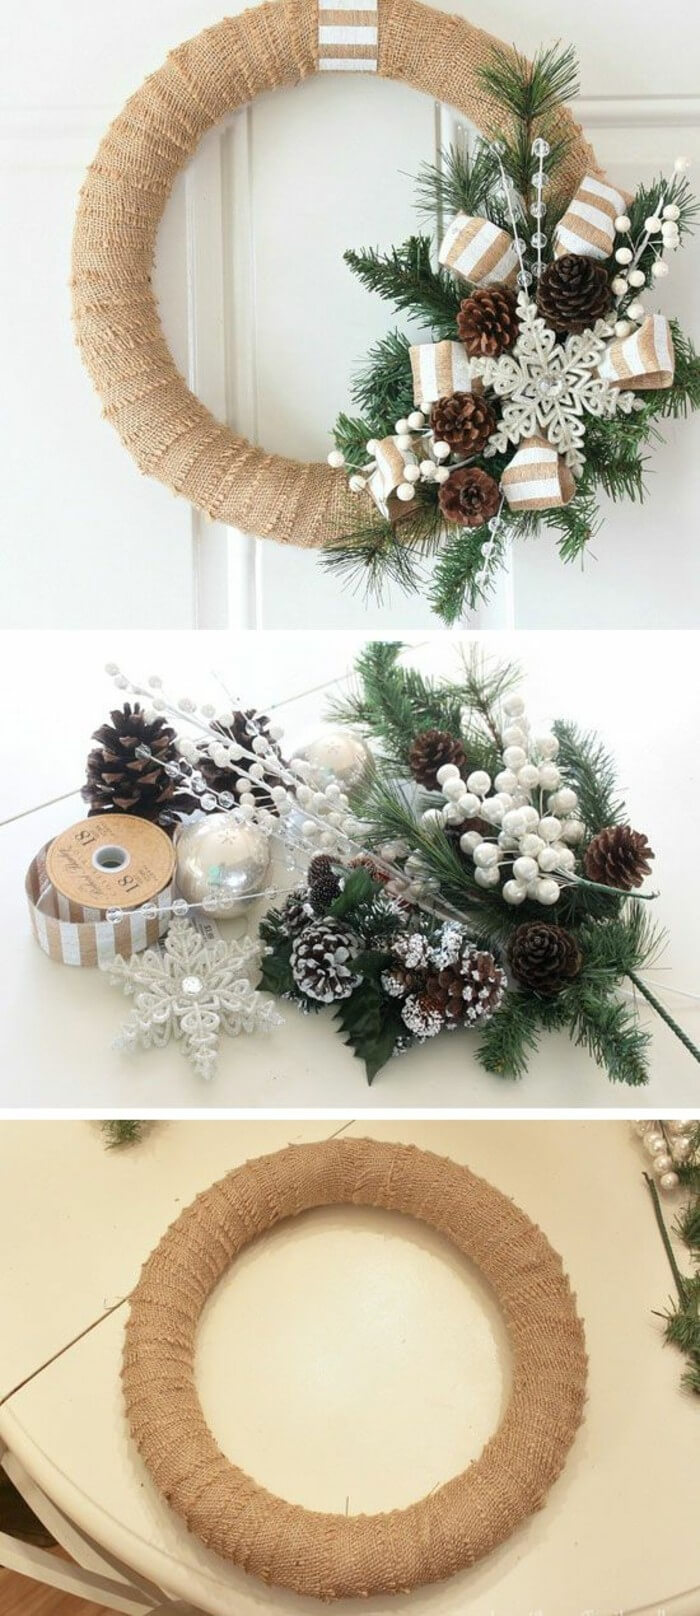 36 Best Christmas Wreath Ideas and Designs for 2018 Easy Wrapped Christmas Wreath Ideas